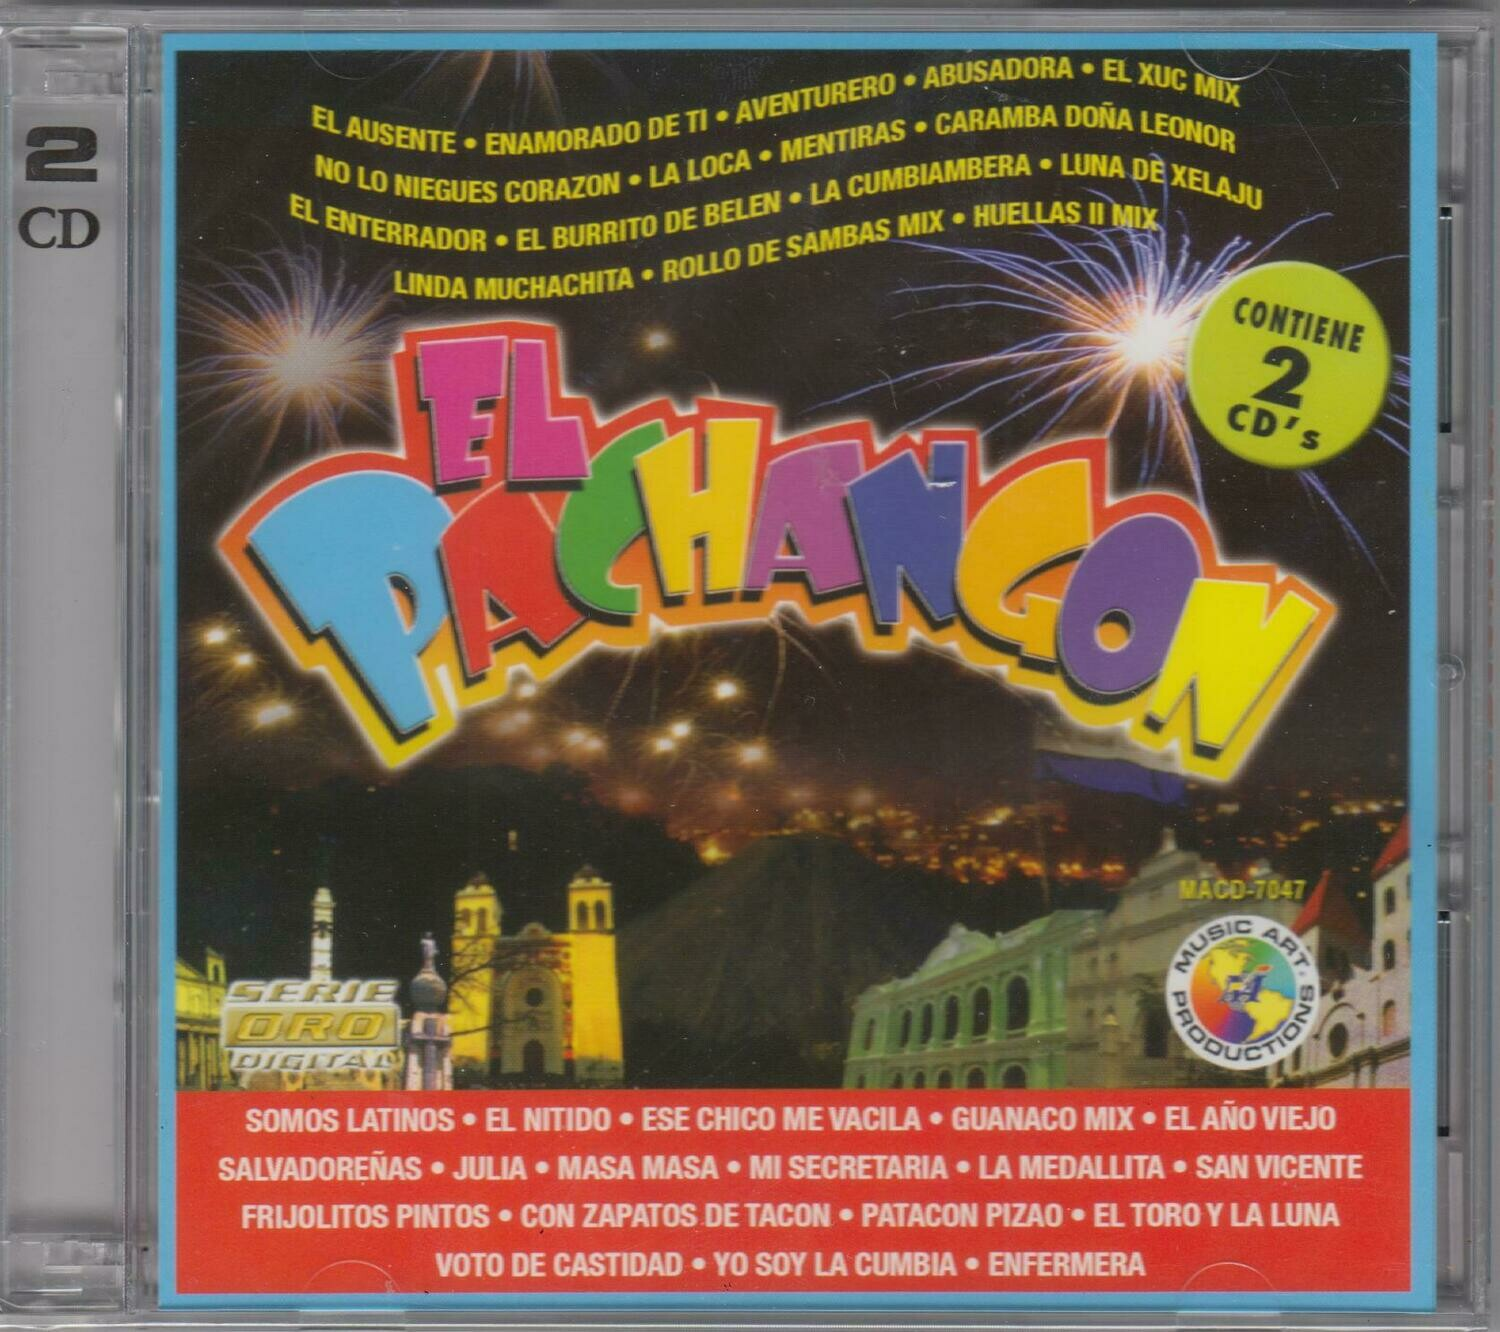 CD El Pachangon Contiene (2 cds)